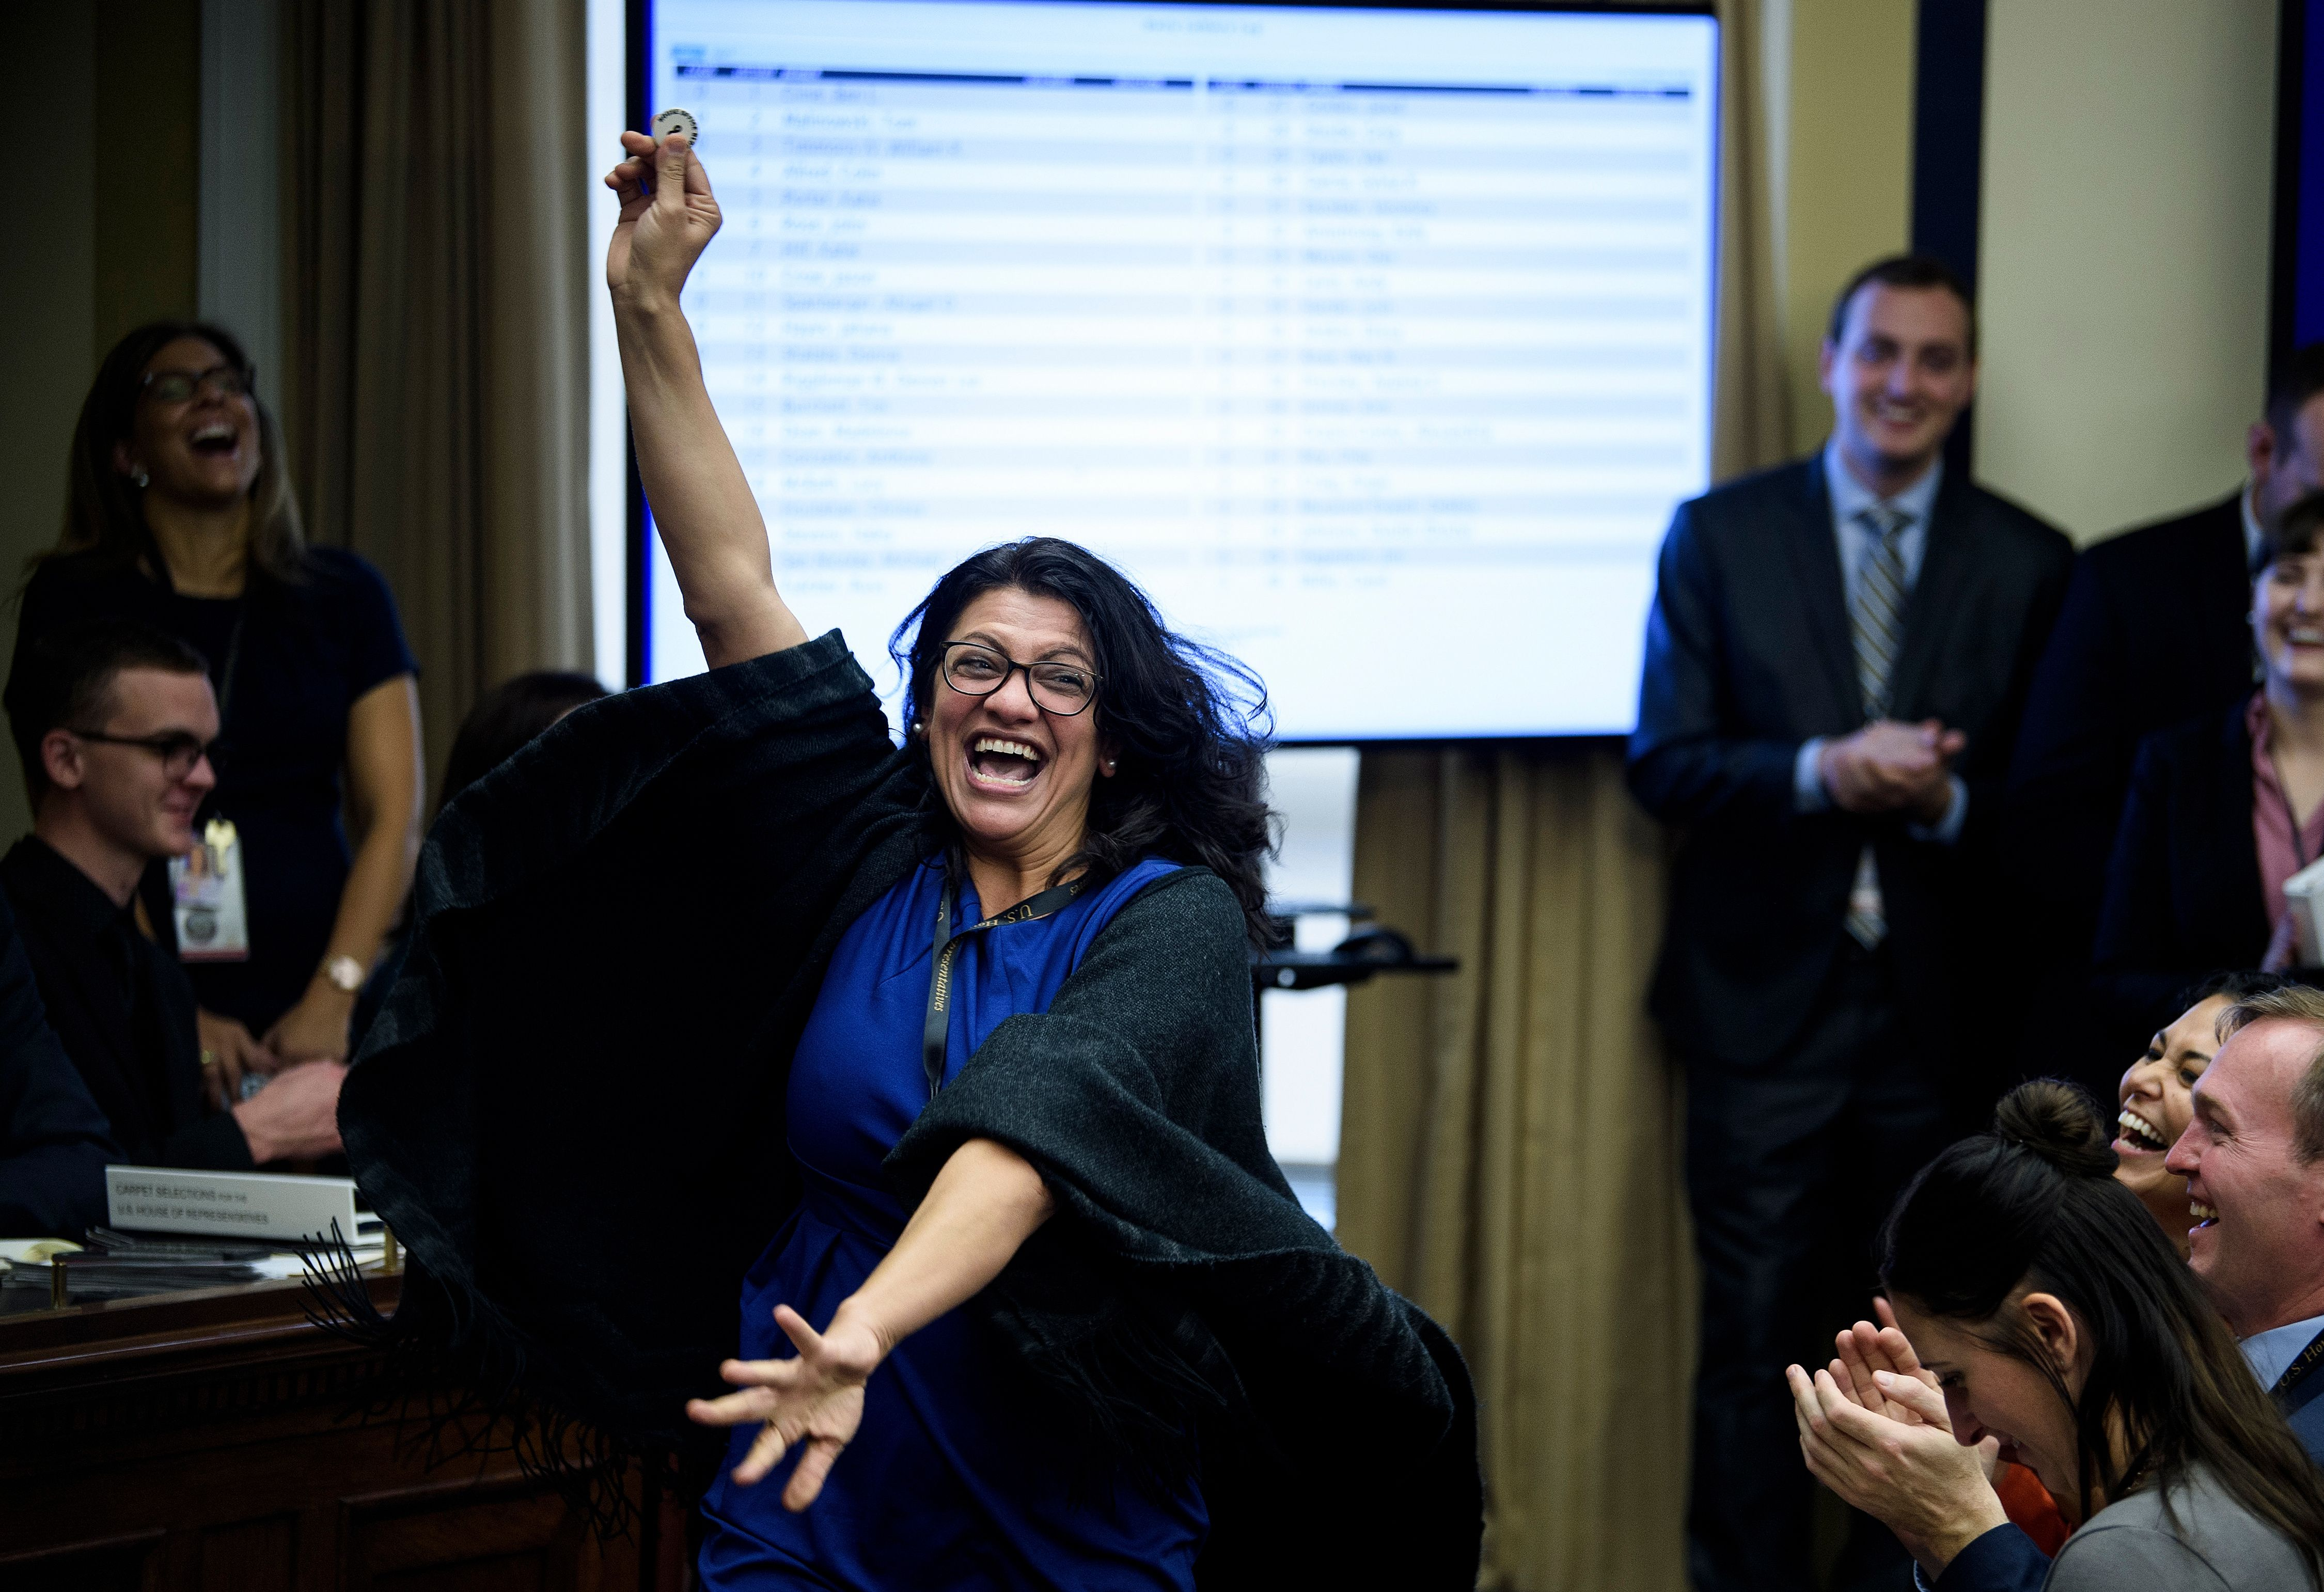 US Representative-elect Rashida Tlaib (D-MI) reacts to a good number during an office lottery for new members of Congress on Capitol Hill November 30, 2018 in Washington, DC. (Brendan Smialowski / AFP / Getty Images)